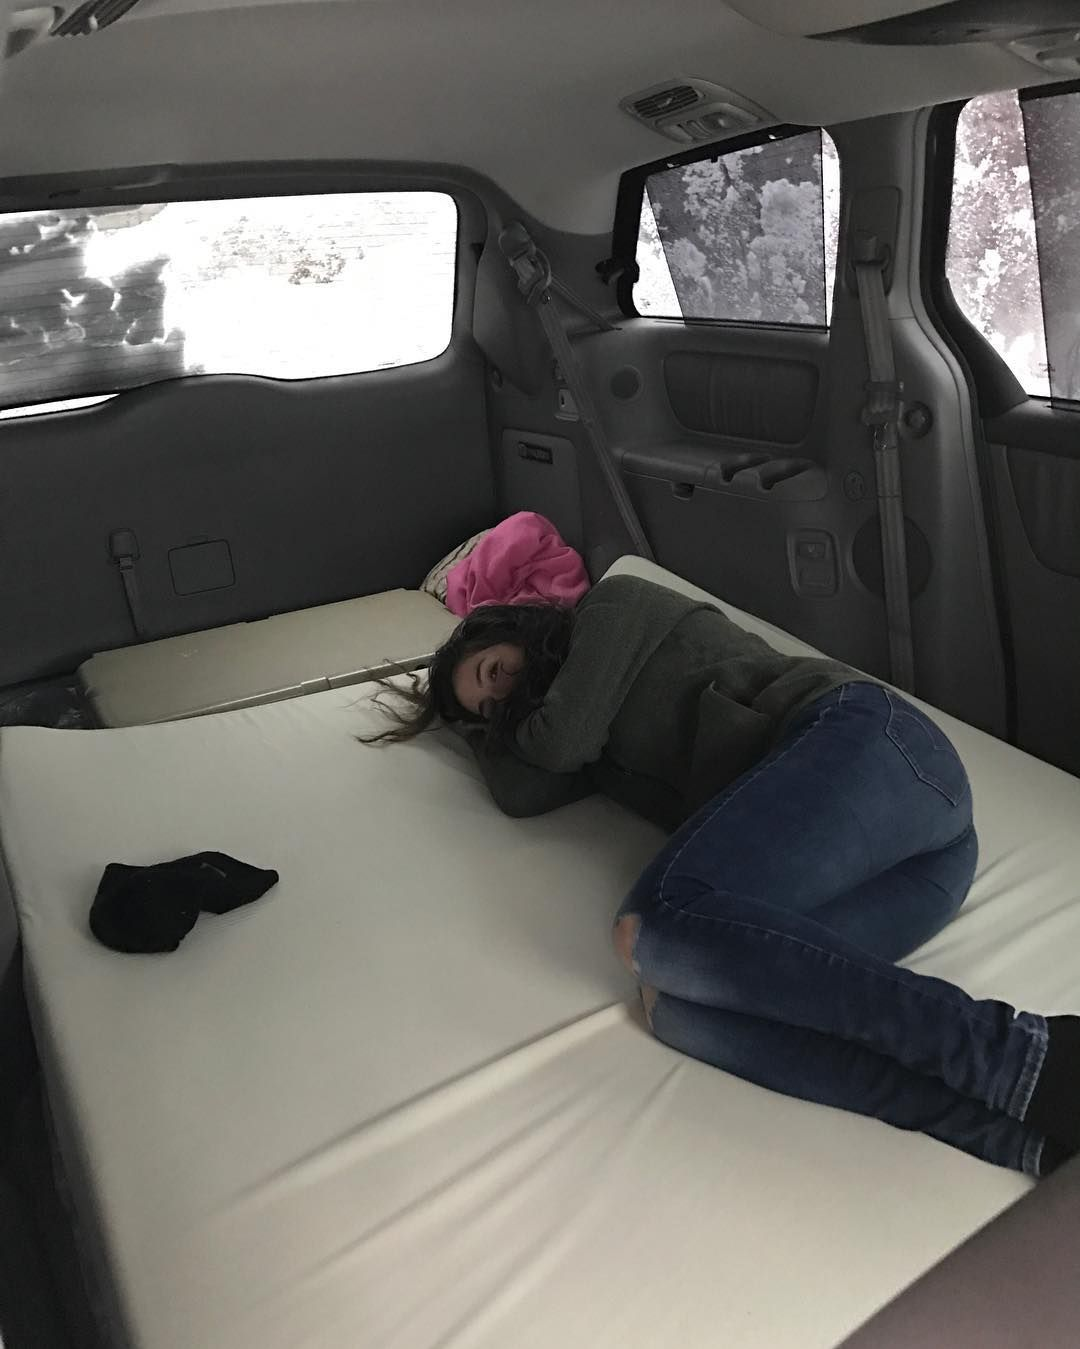 Fyi You Can Fit A Full Mattress Very Comfortably In The Back Of A